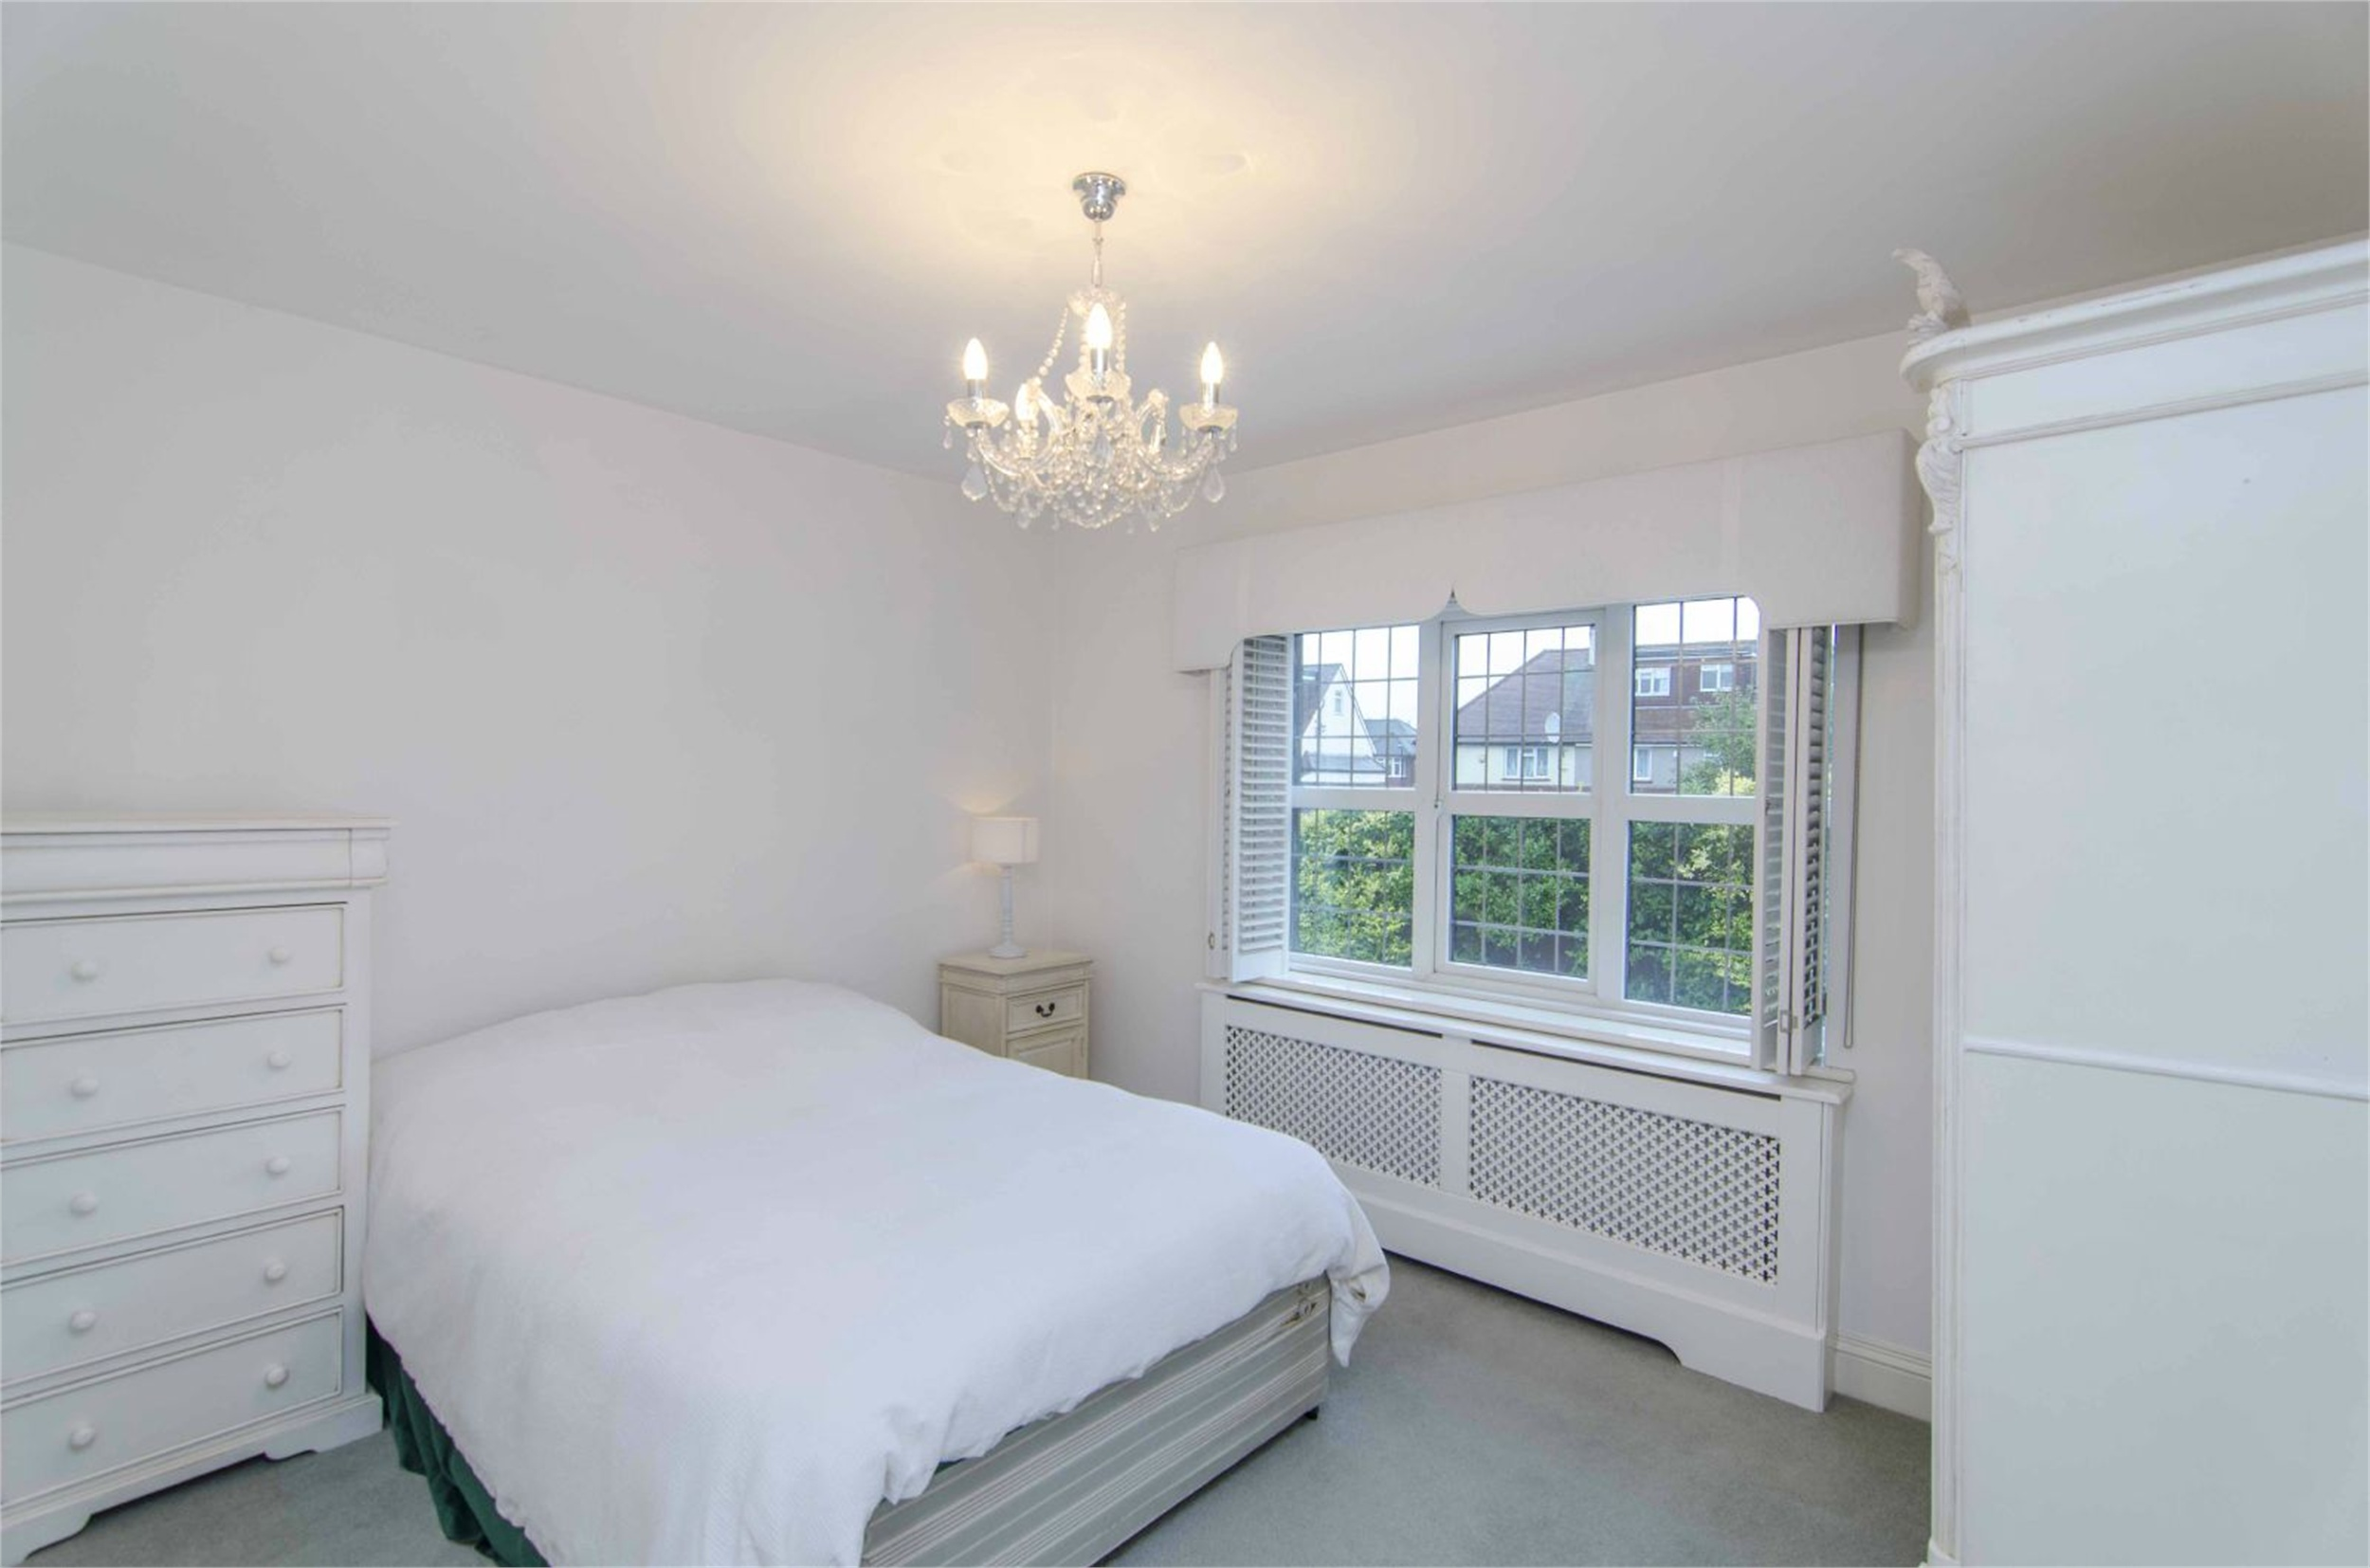 Griffins Close Winchmore Hill N21 Image 14